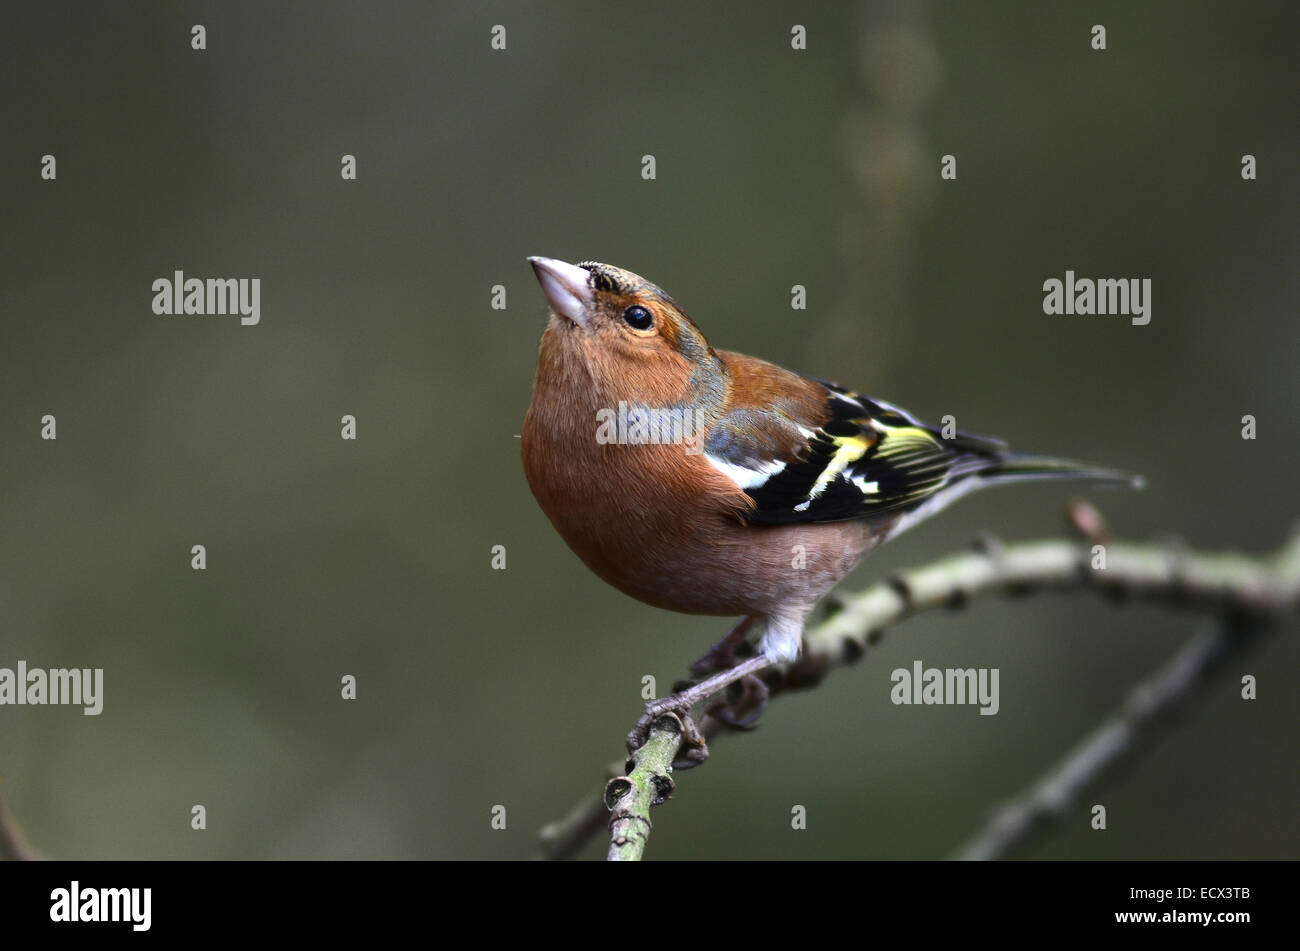 Male chaffinch - Stock Image